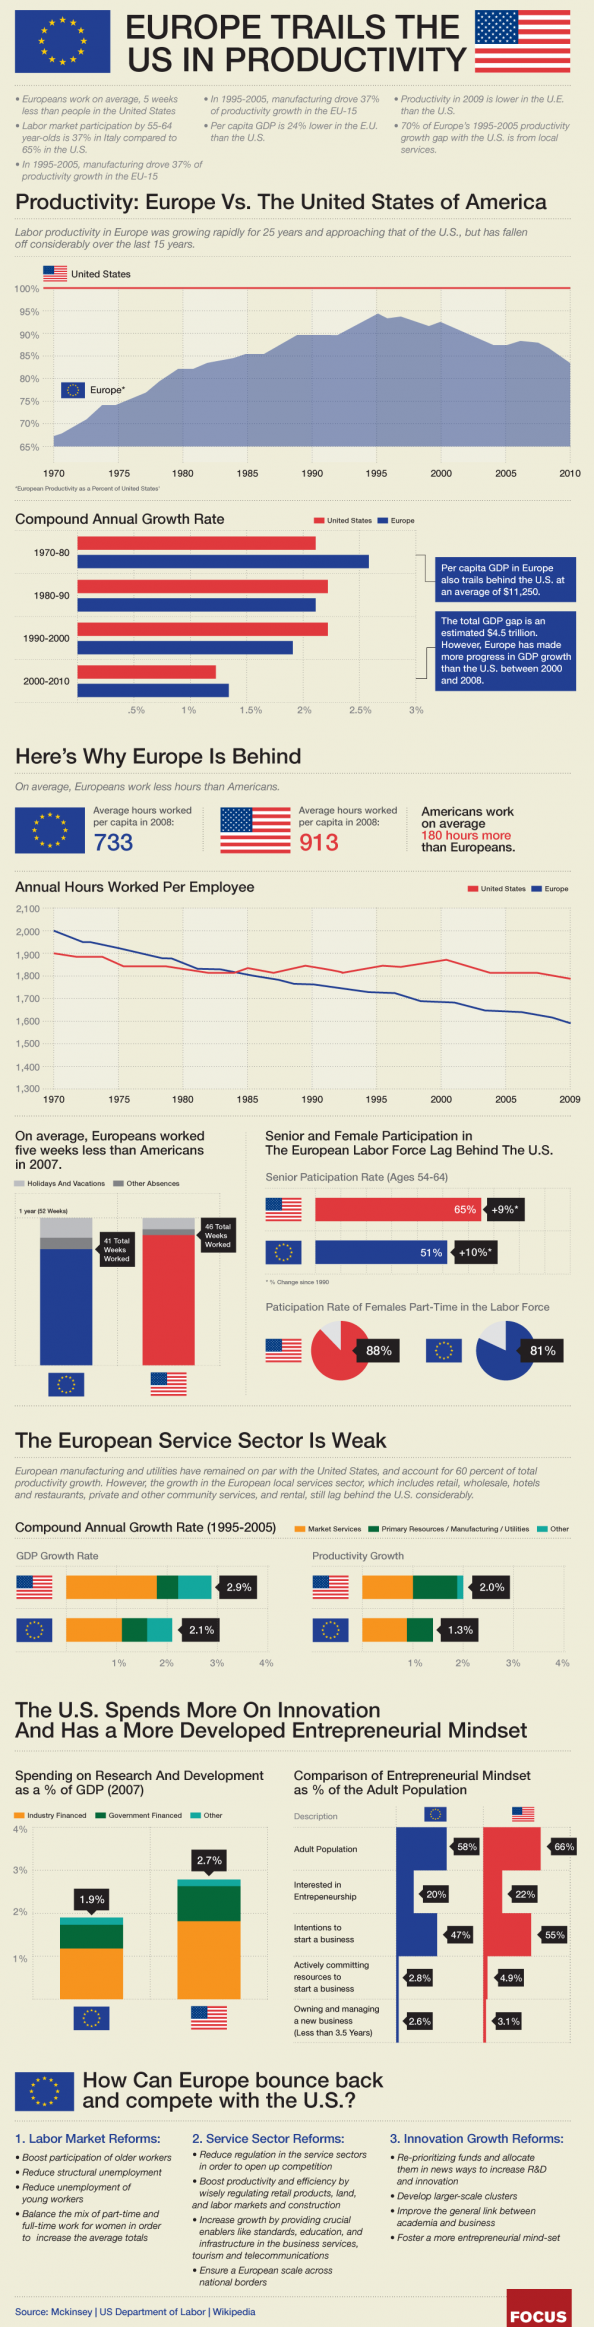 Europe Trails The US In Productivity Infographic